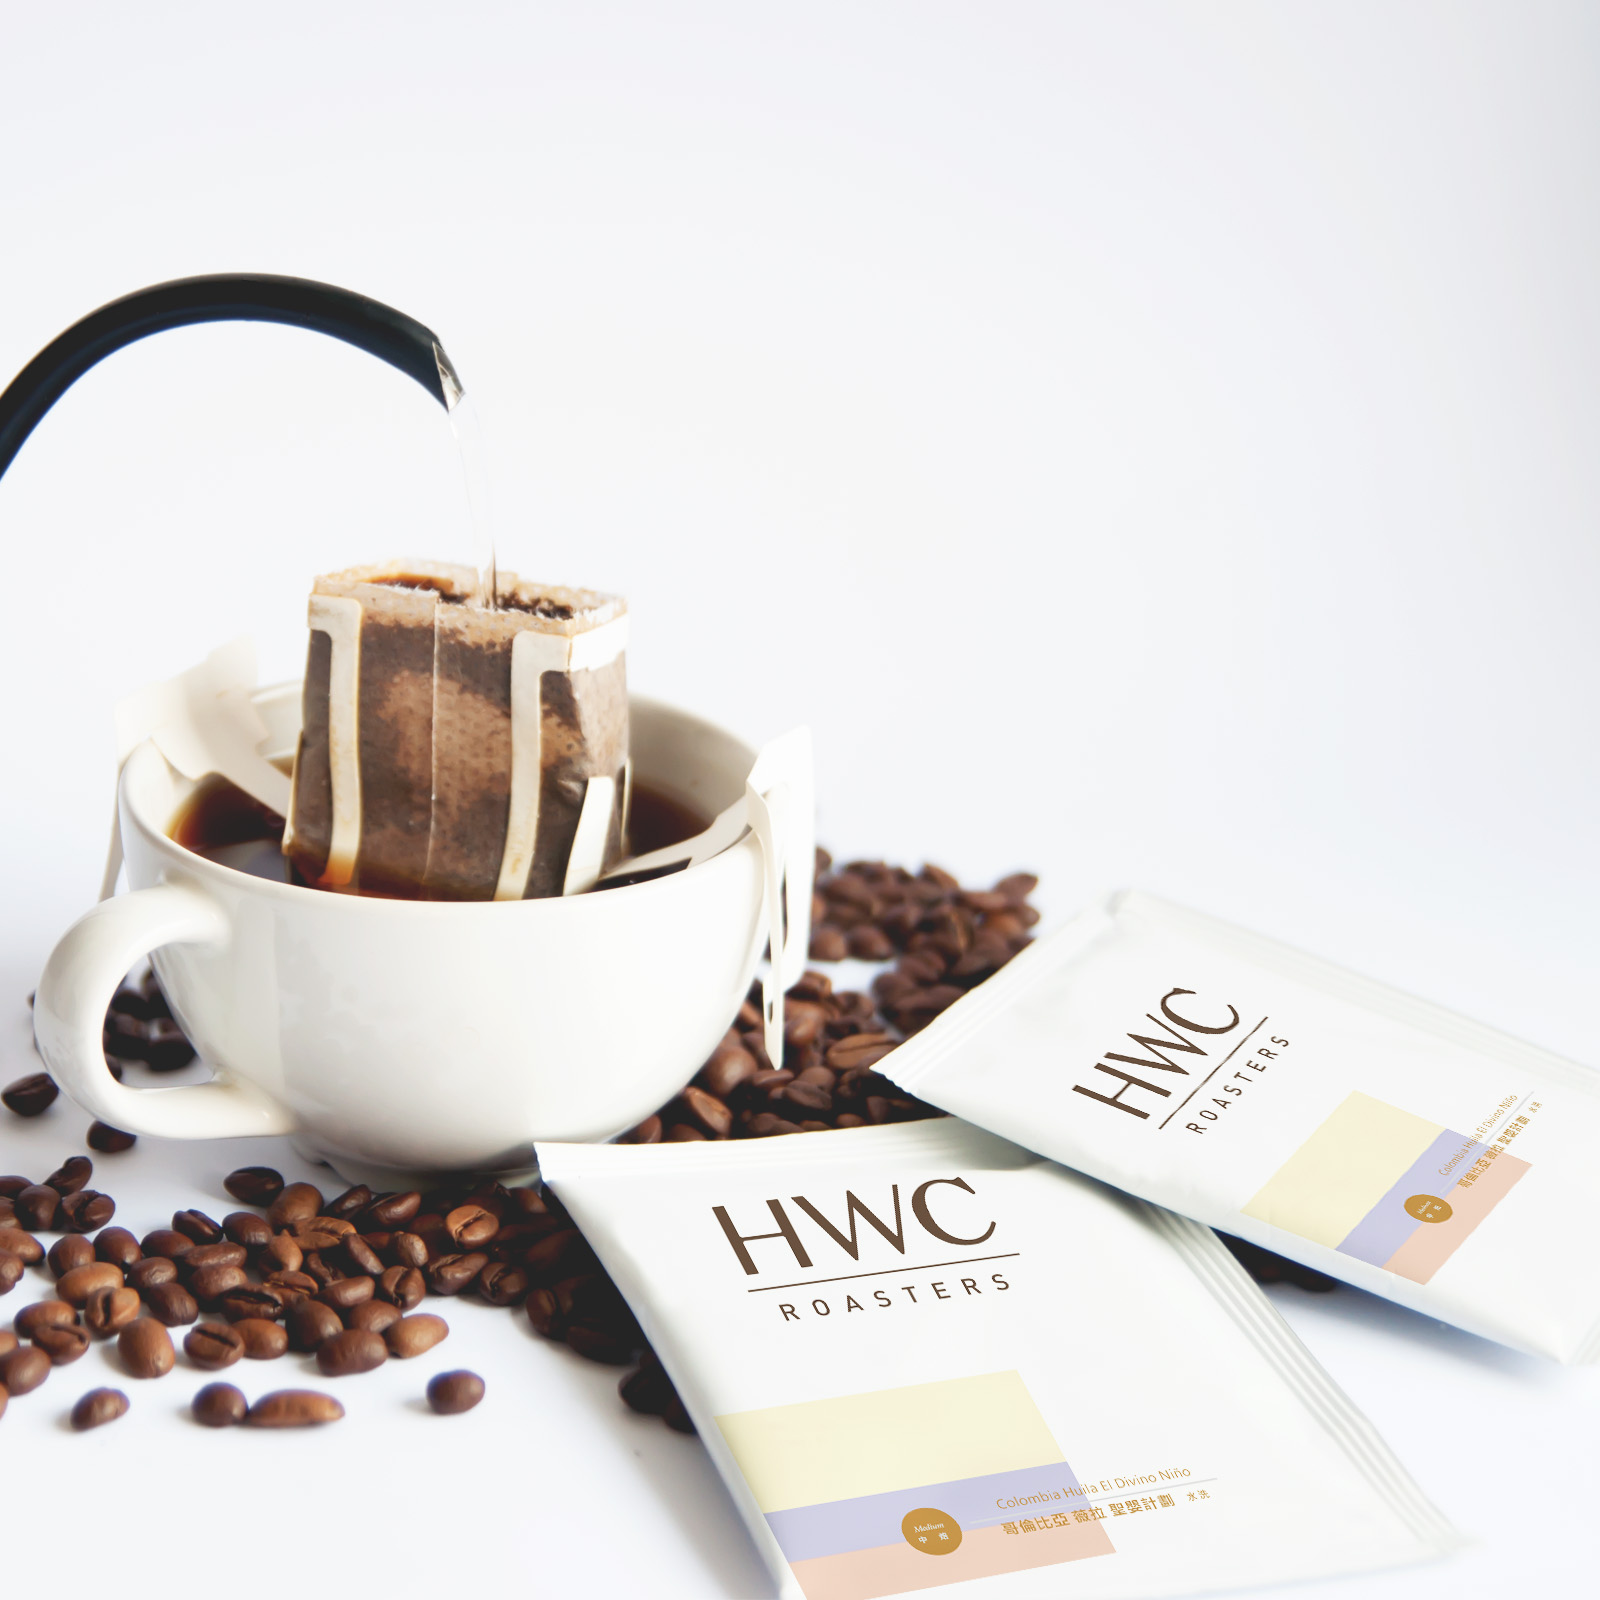 Colombia Huila El Divino Nino Hanging Ear Drip Coffee Ground Coffee OEM Customized Private Label Wholesale